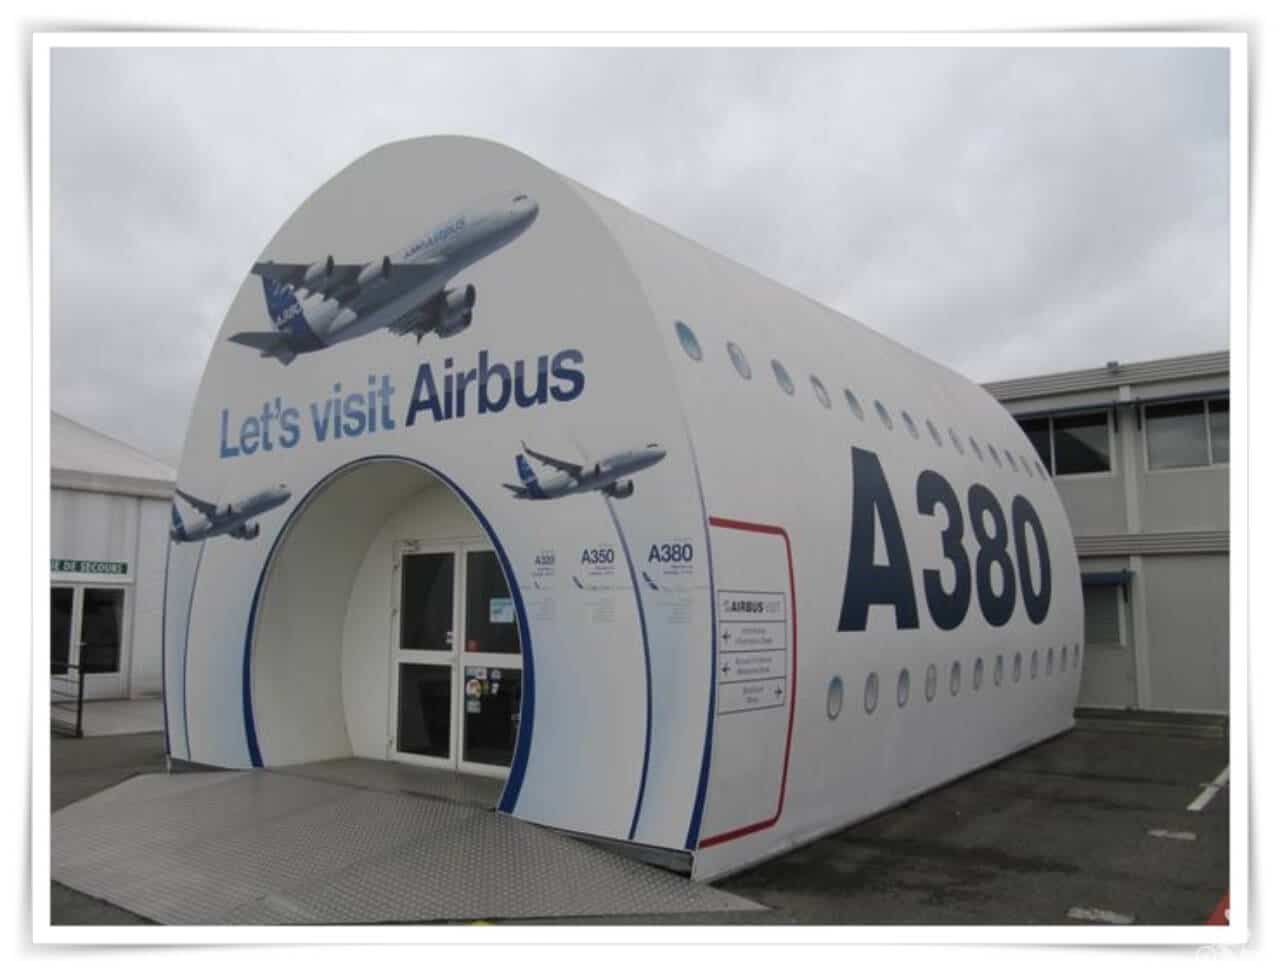 fabrica airbus Toulouse